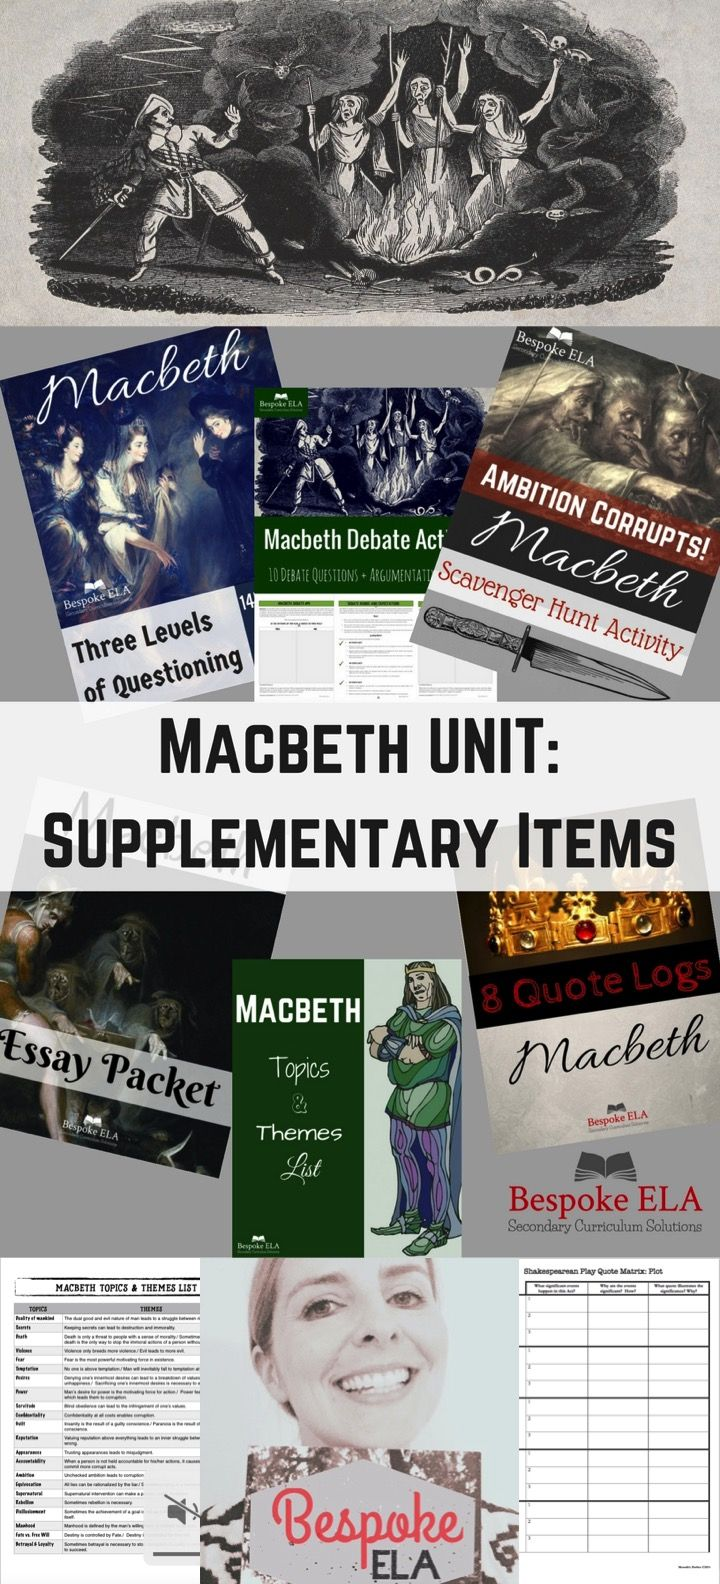 macbeth essays on themes best ideas about macbeth analysis  best ideas about macbeth analysis shakespeare macbeth bundle supplementary materials for any macbeth unit